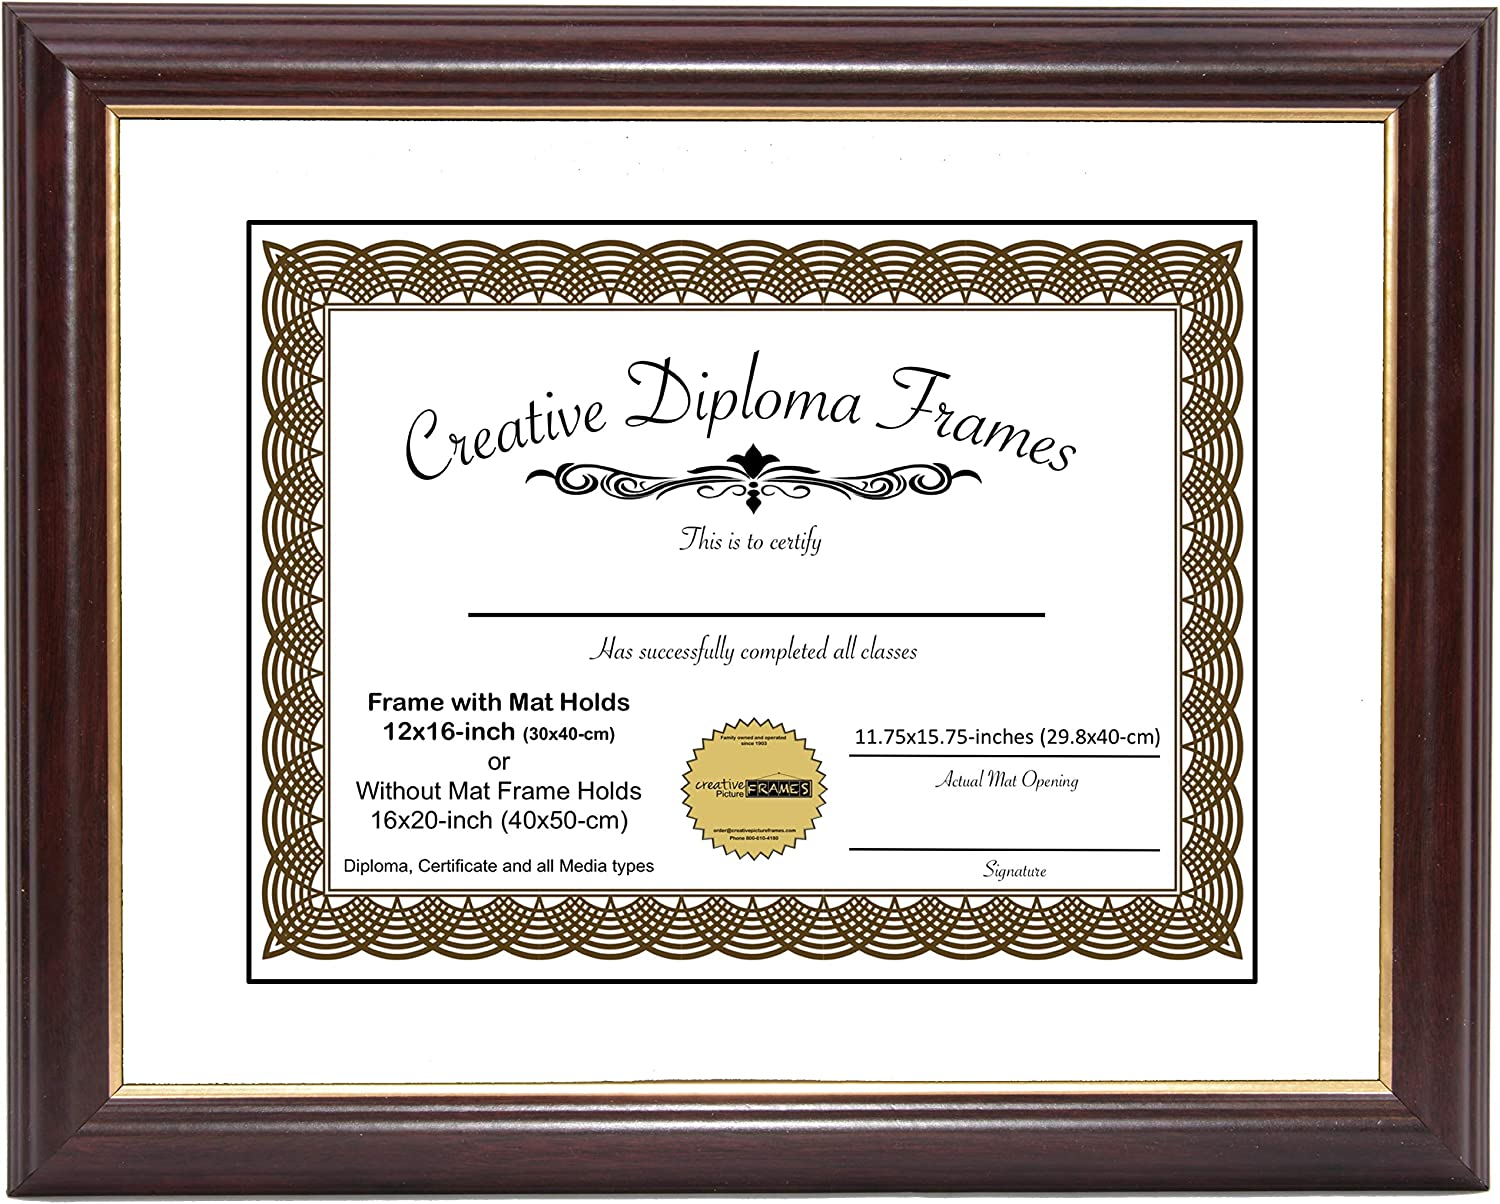 CreativePF [12x16-Diploma] Mahogany Frame with Gold Rim, White Matting Holds 12x16-inch Documents with Glass and Installed Wall Hanger